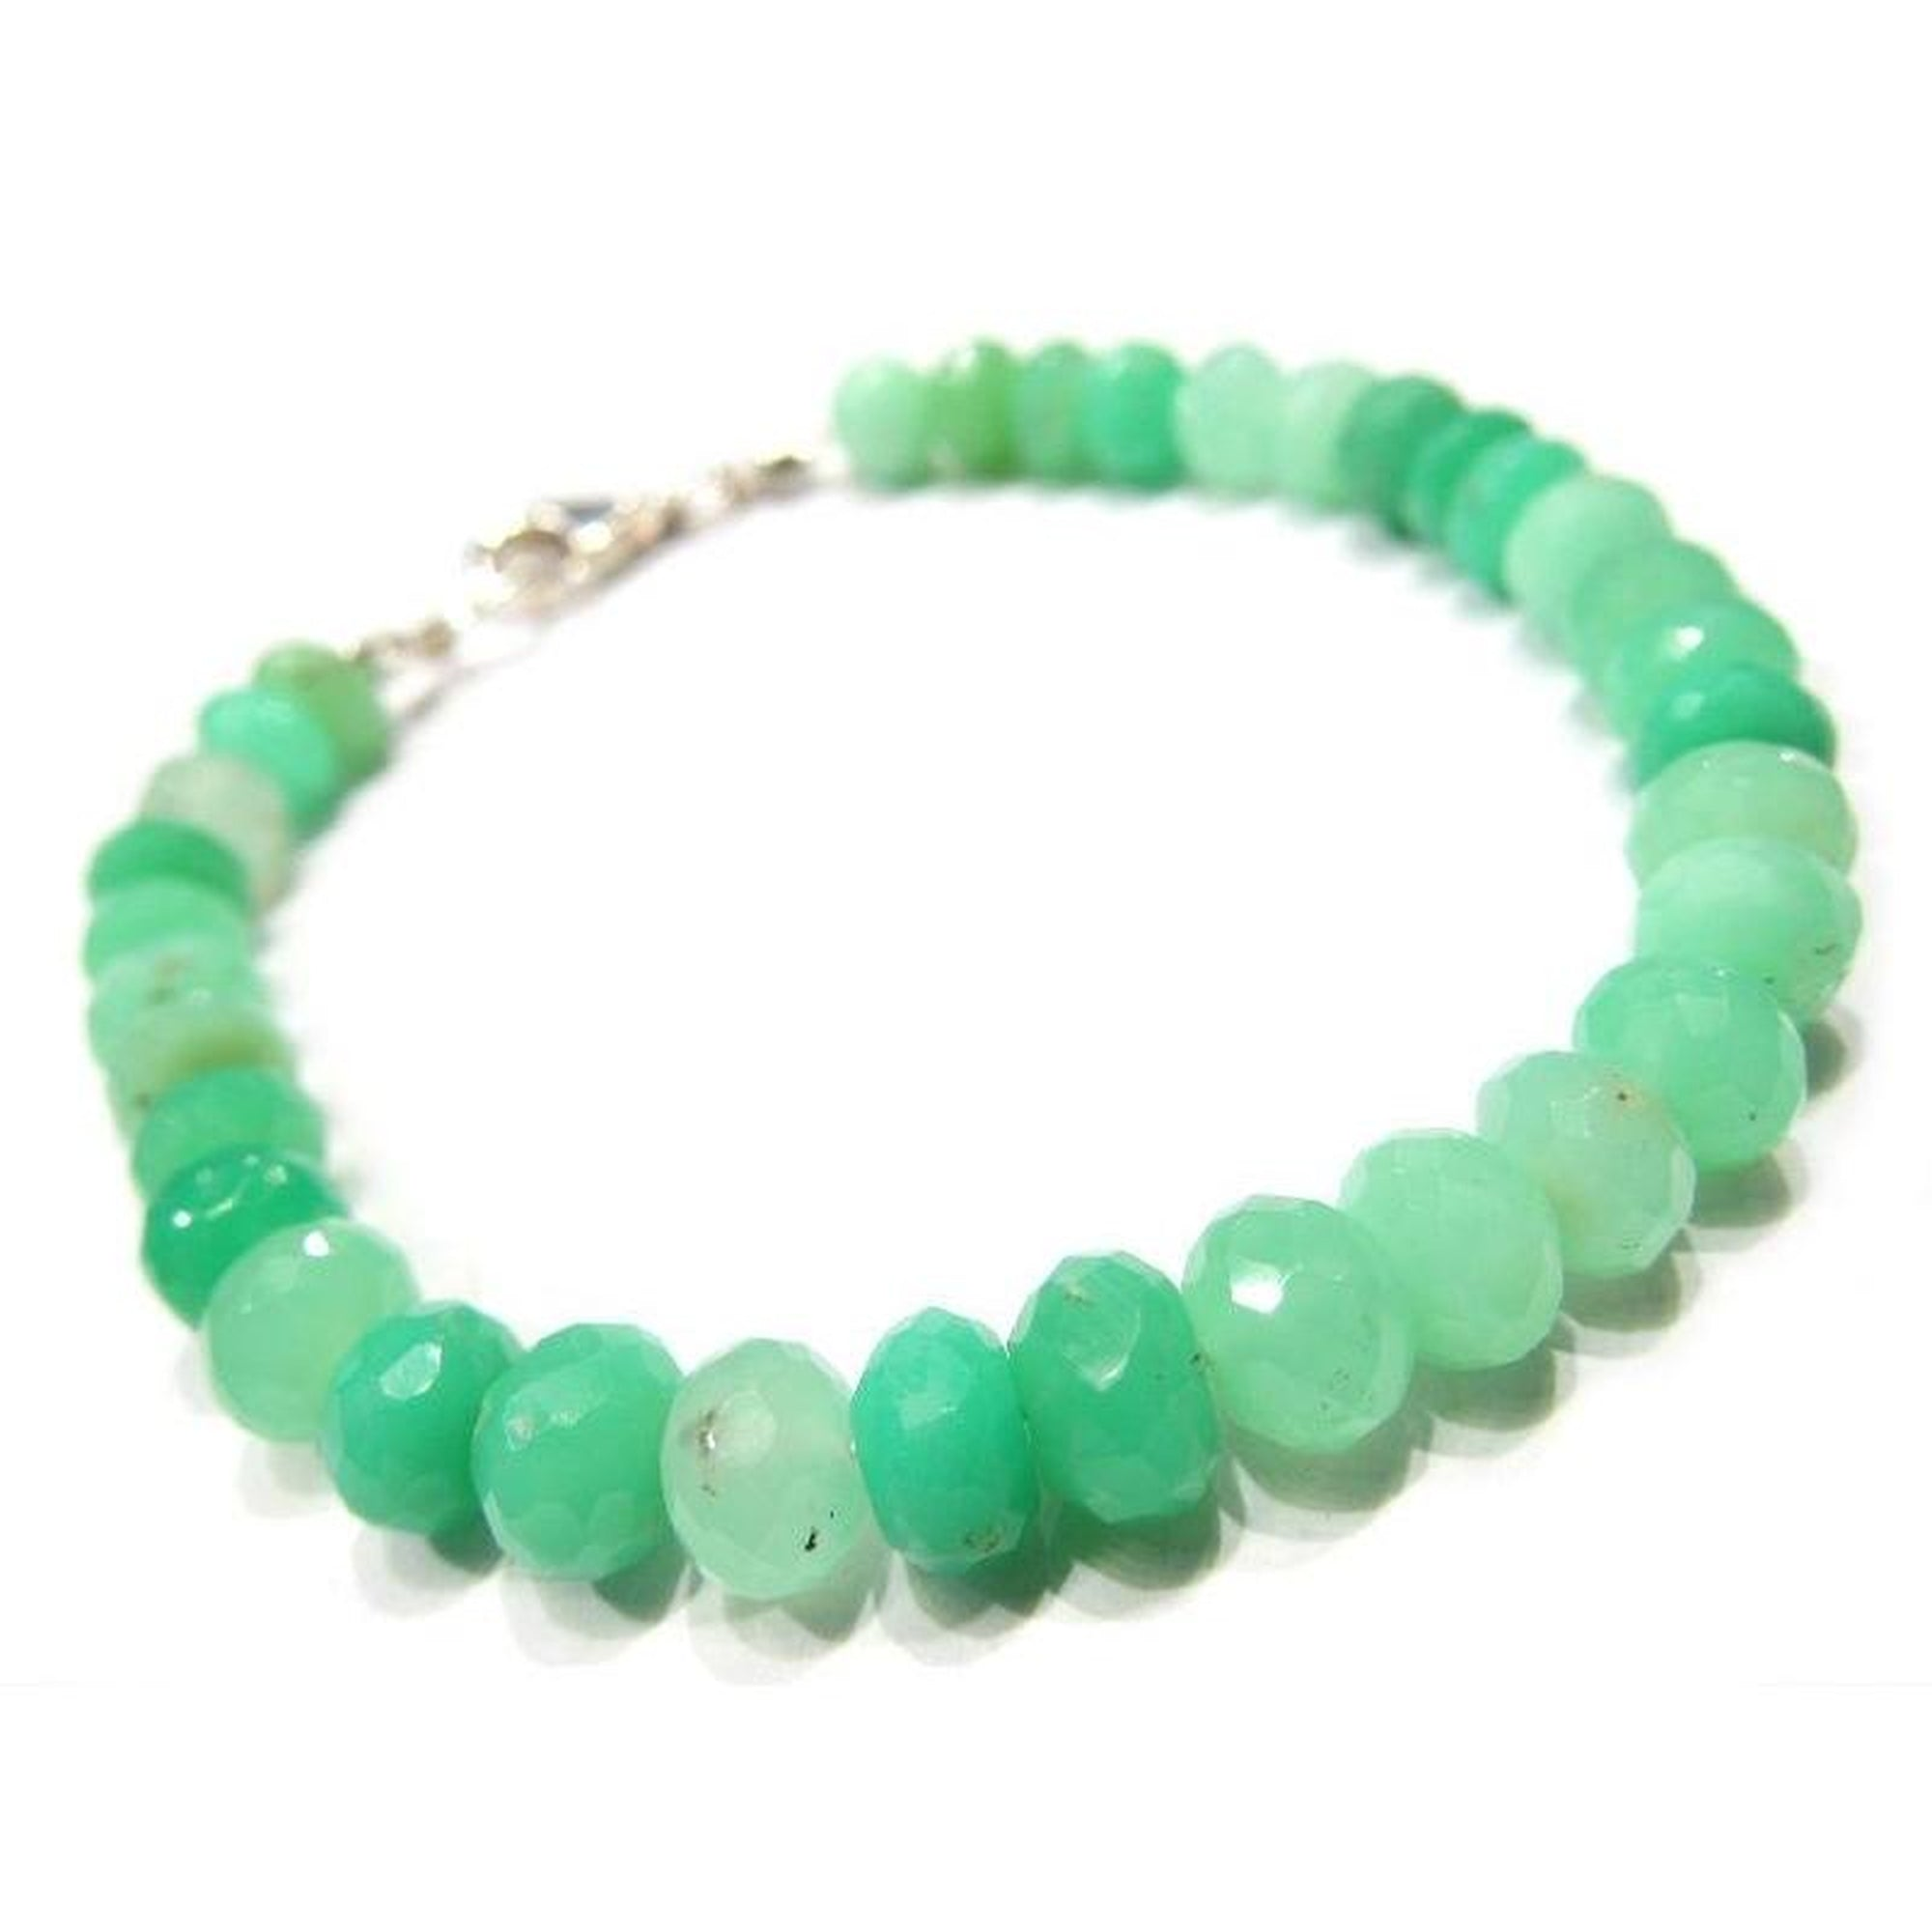 Chrysoprase Bracelet with Sterling Silver Trigger Clasp